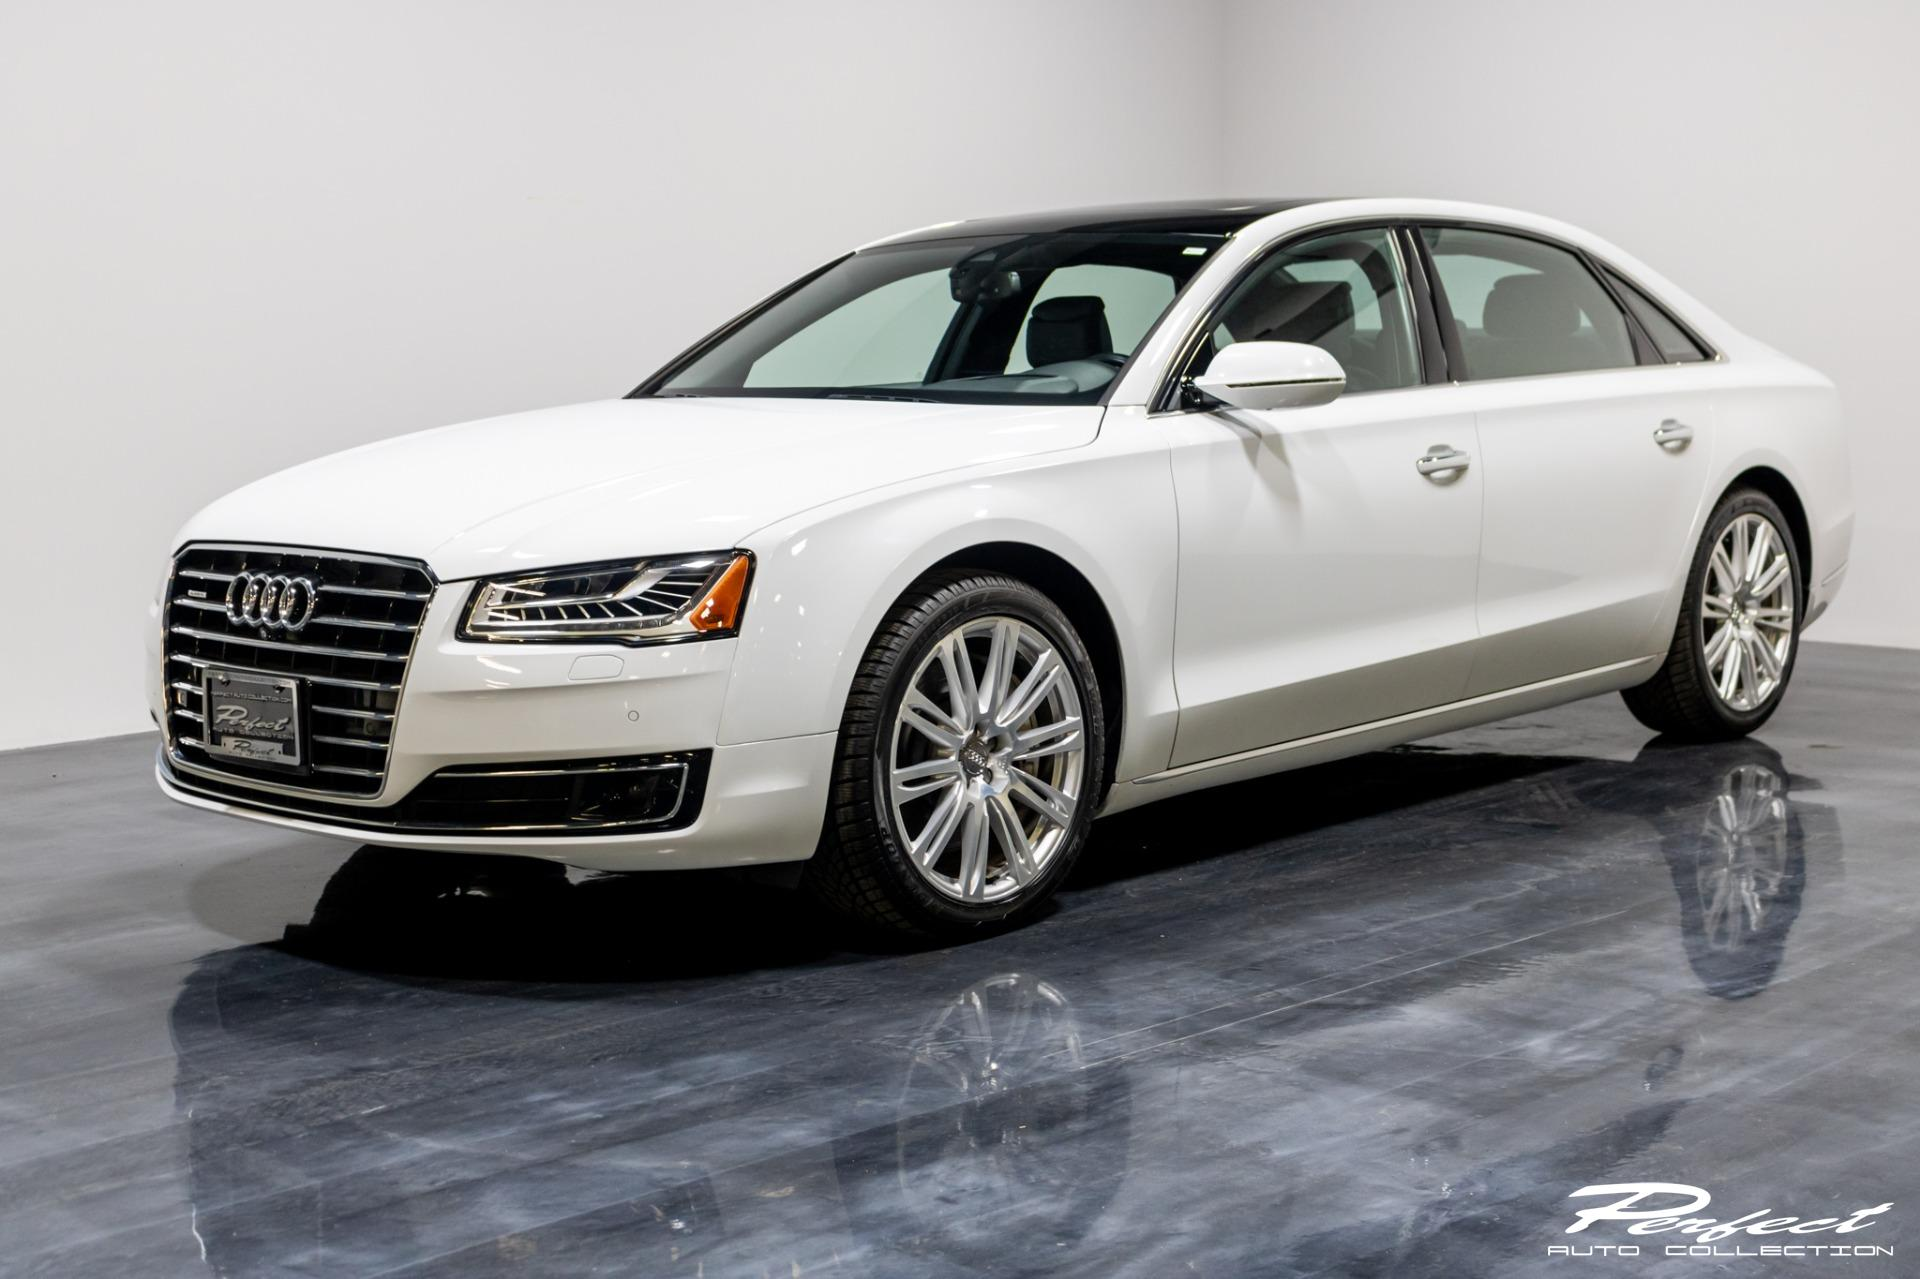 Used 2016 Audi A8 L 3.0T quattro for sale Sold at Perfect Auto Collection in Akron OH 44310 1